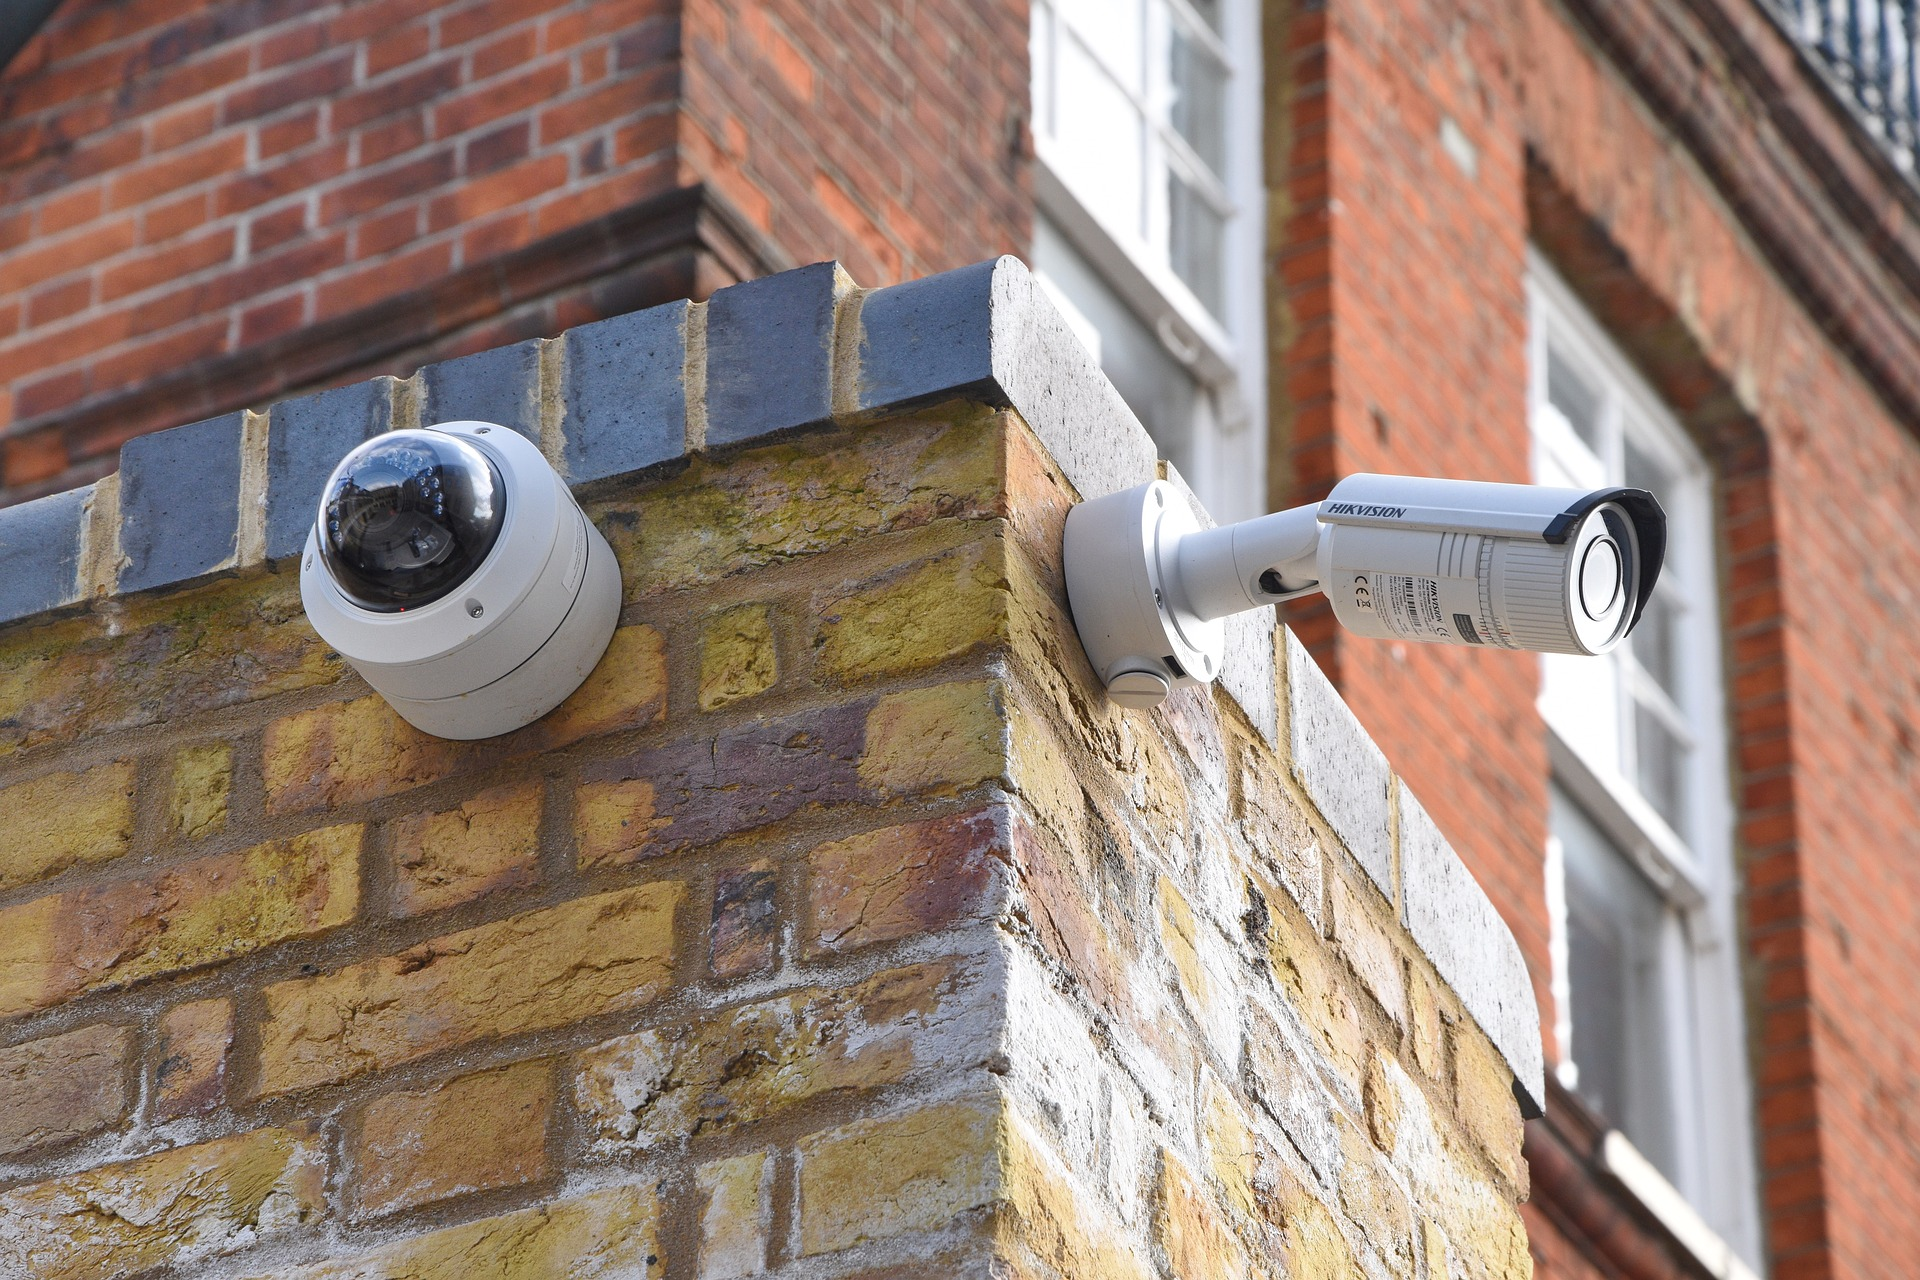 Introduction to Axis Camera & Its Features